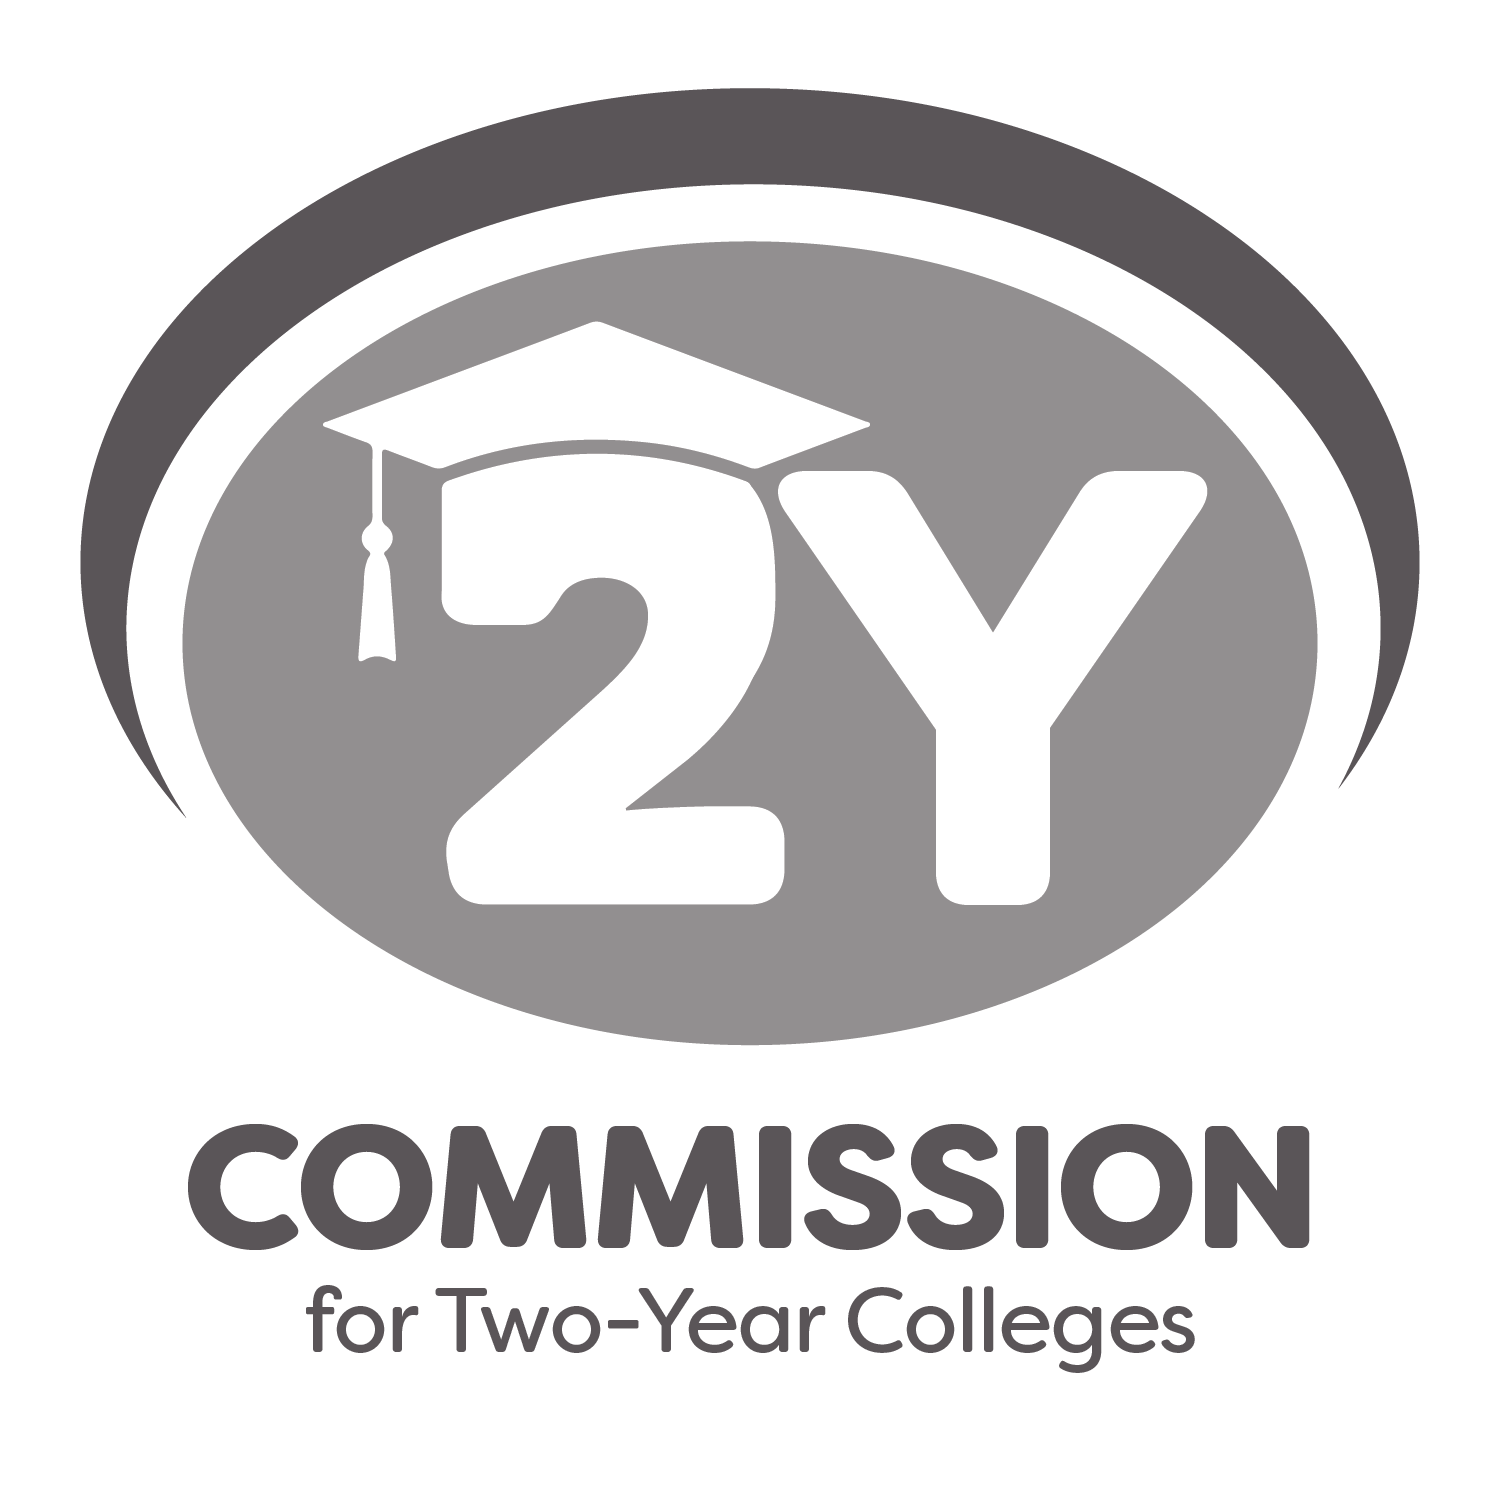 Commission for Two-Year Colleges logo